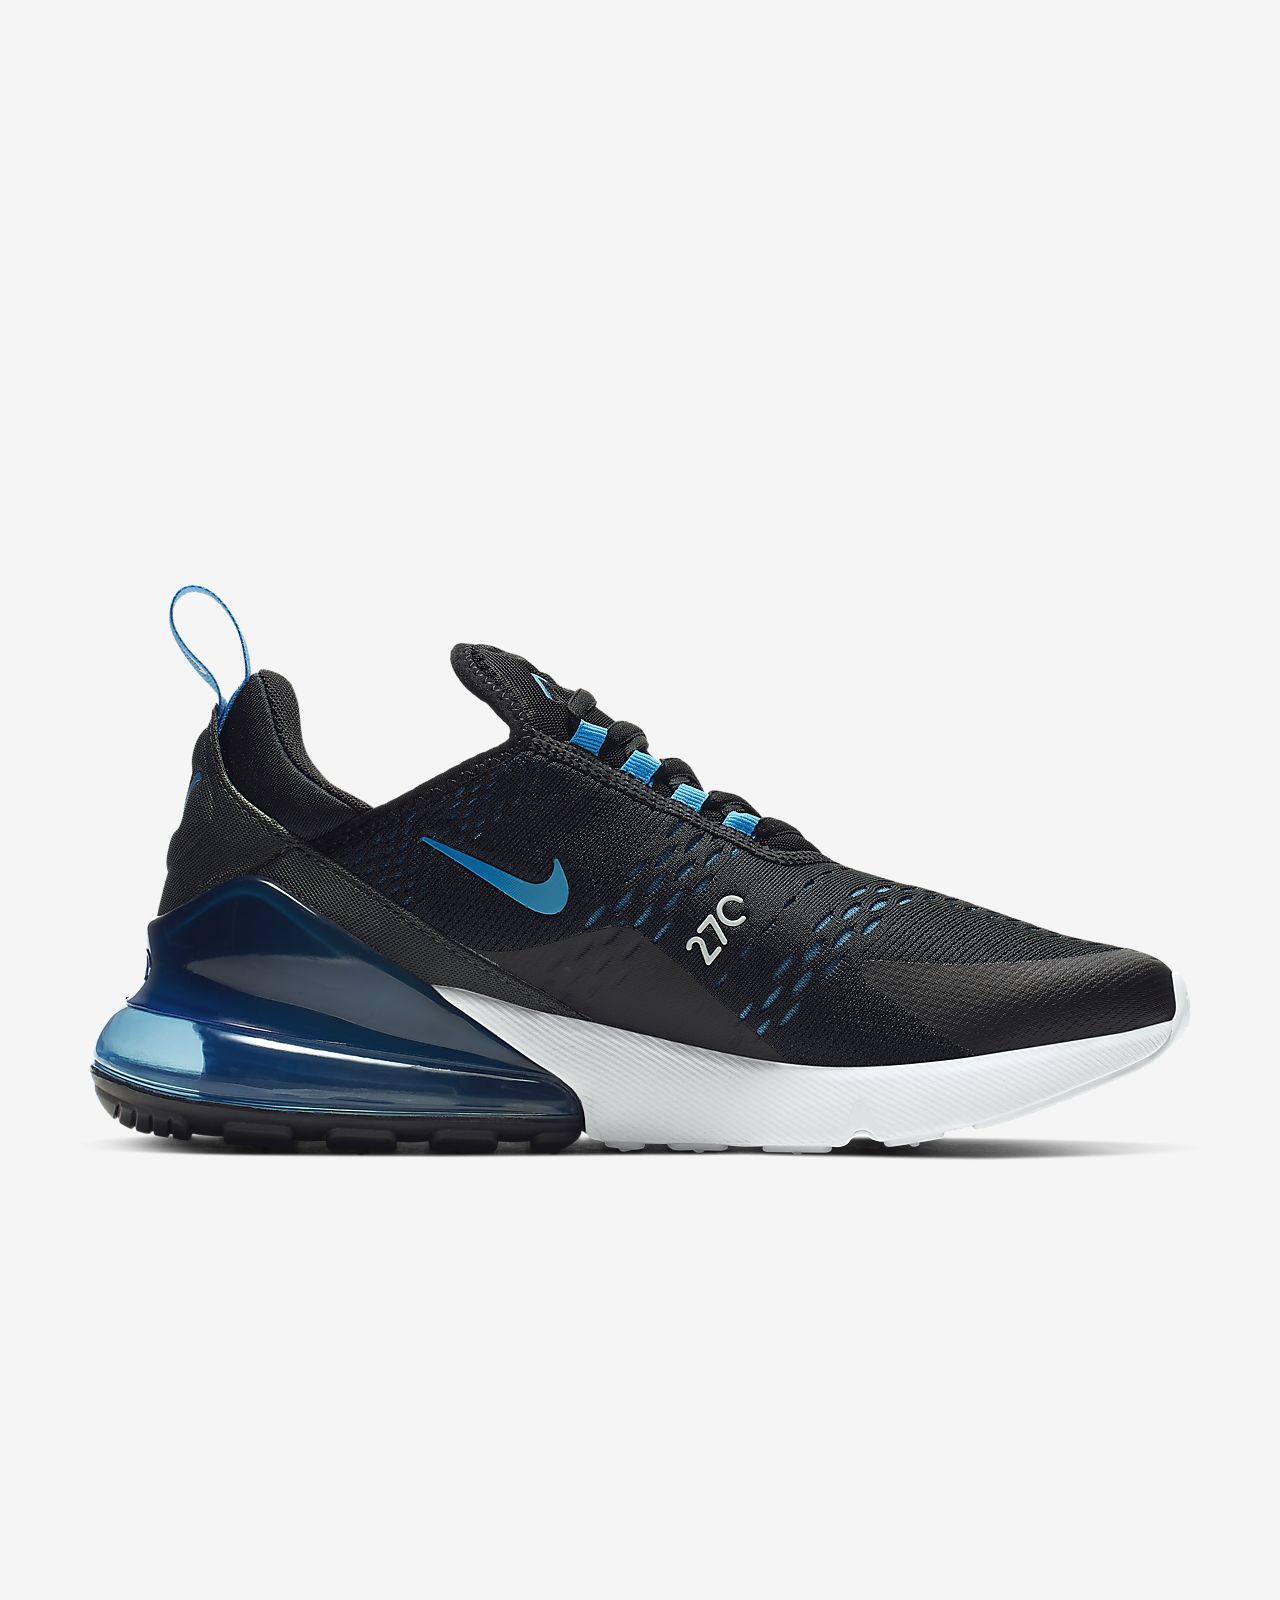 lowest price 13cbe 8c1a2 ... Nike Air Max 270 Men s Shoe